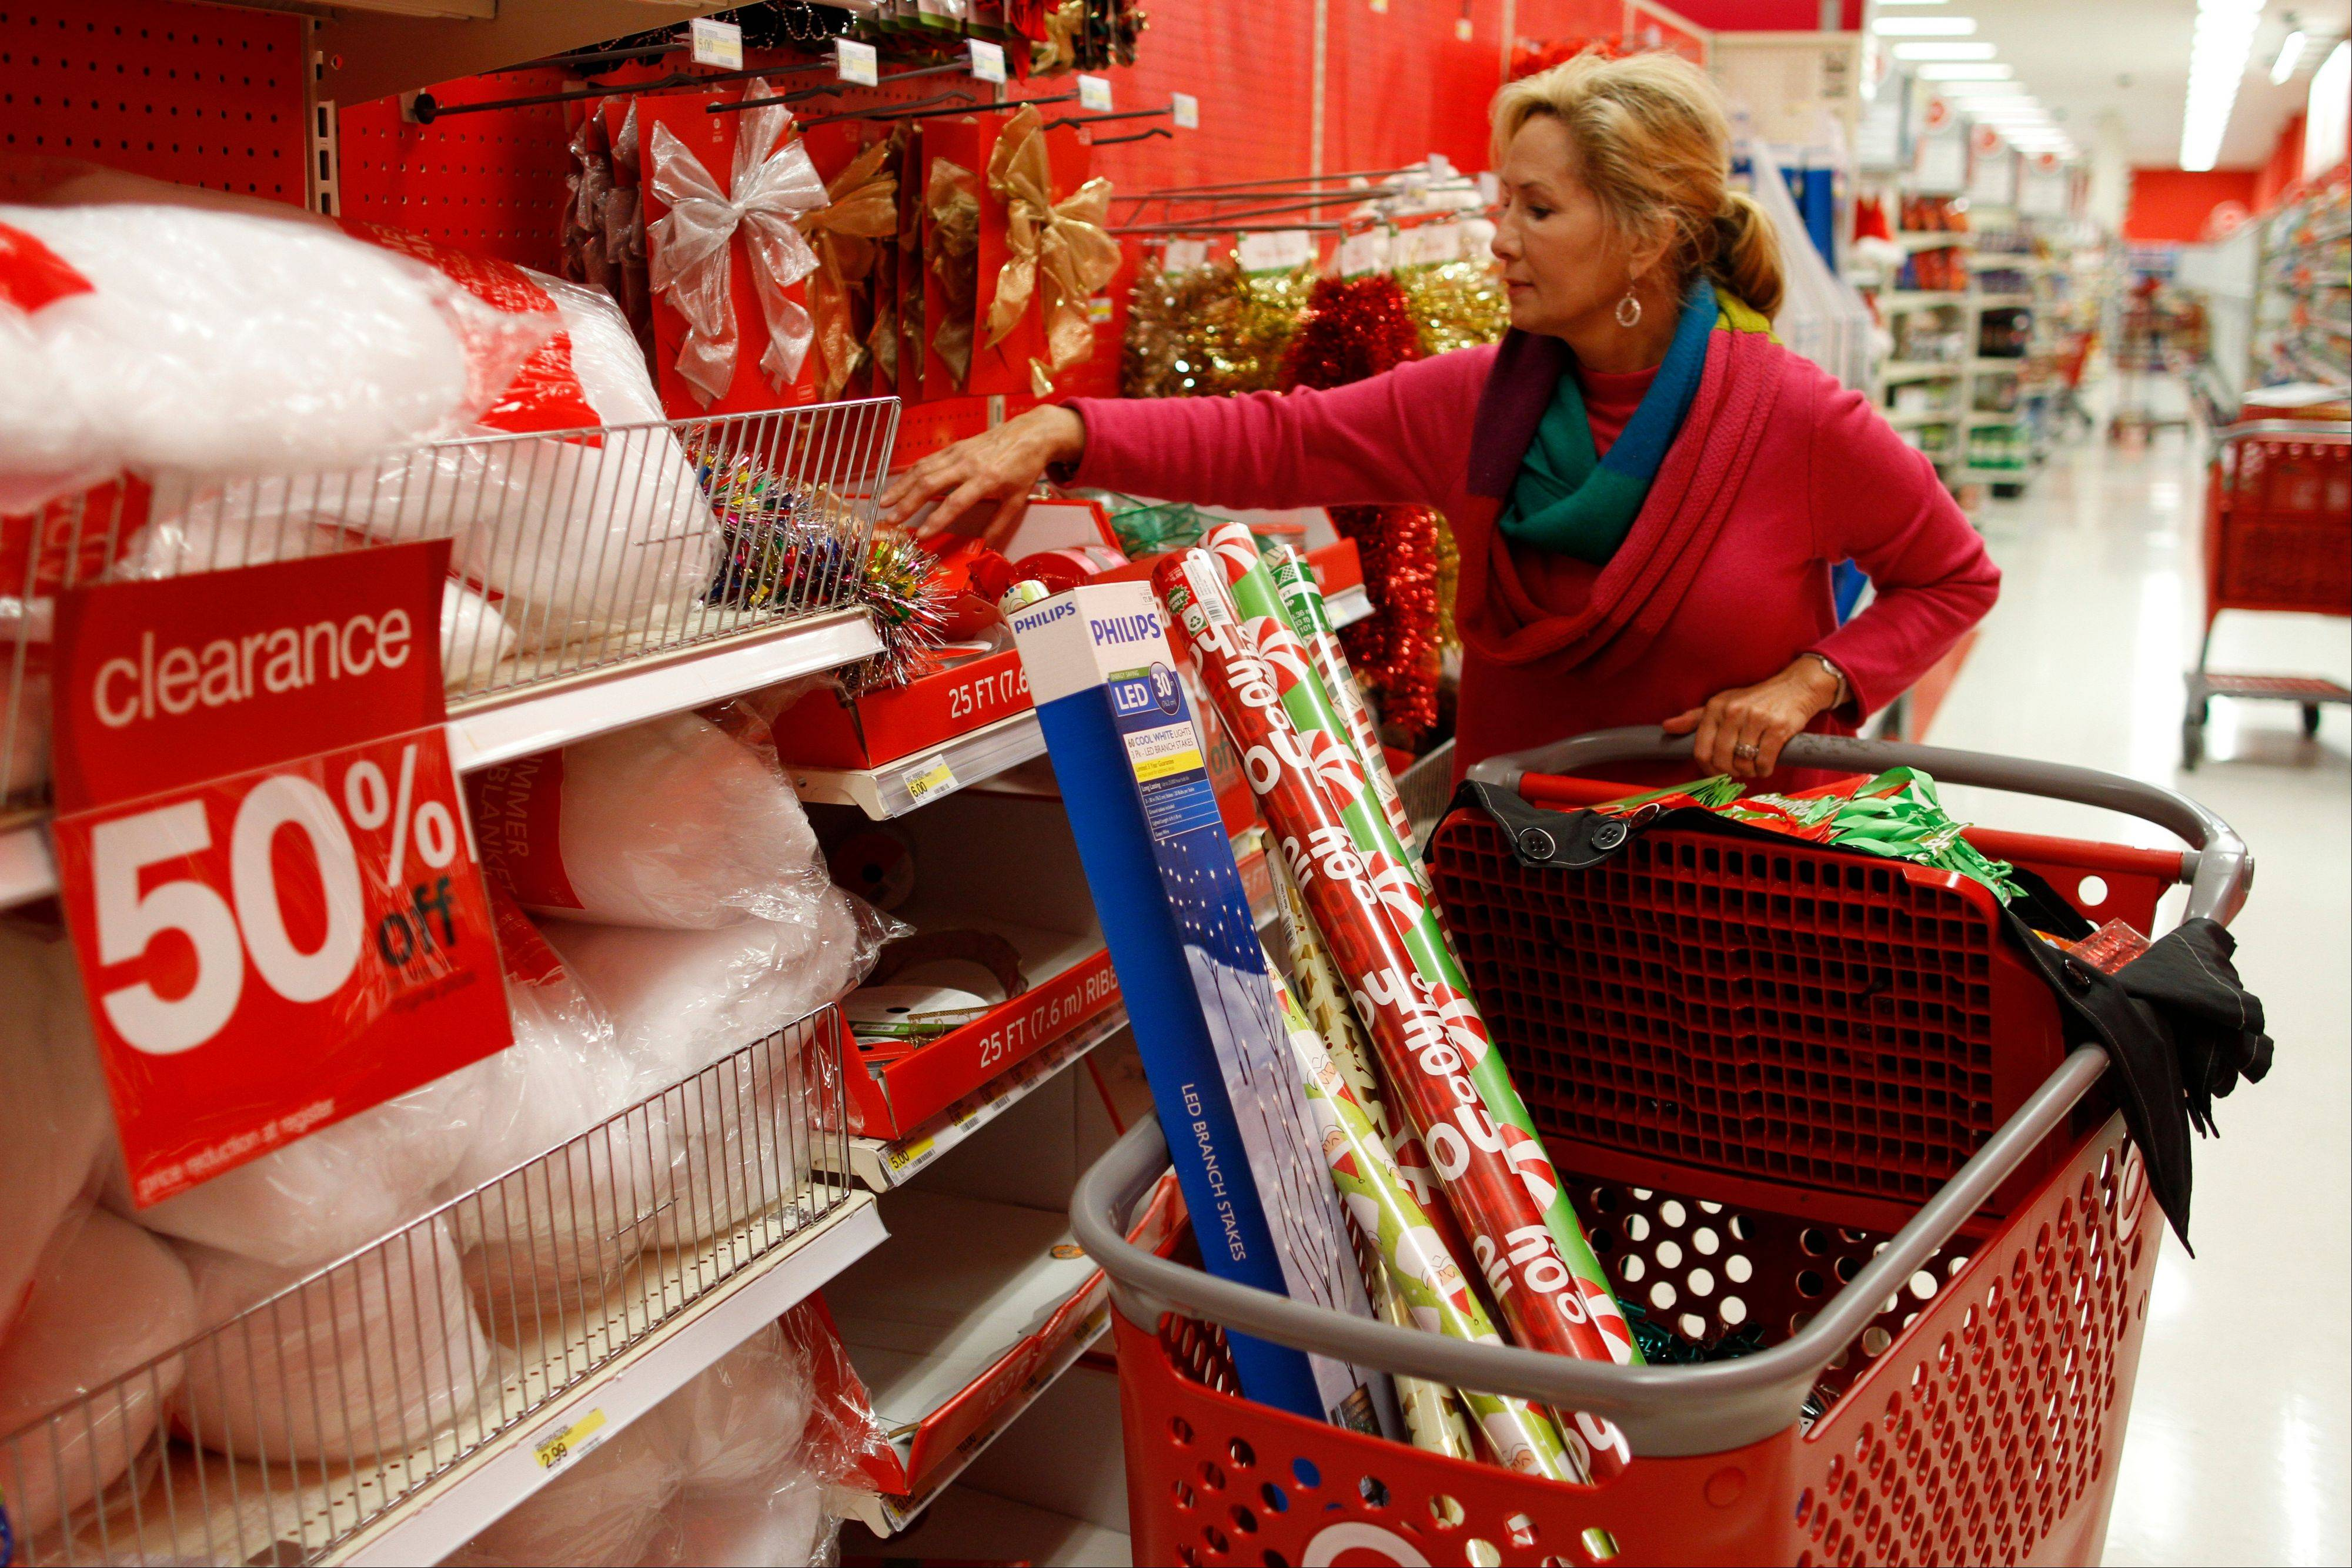 Holly Bryan stocks up on Christmas wrapping paper and other holiday items while shopping the day after Christmas deals at a Target store in Chattanooga, Tenn. Wednesday.